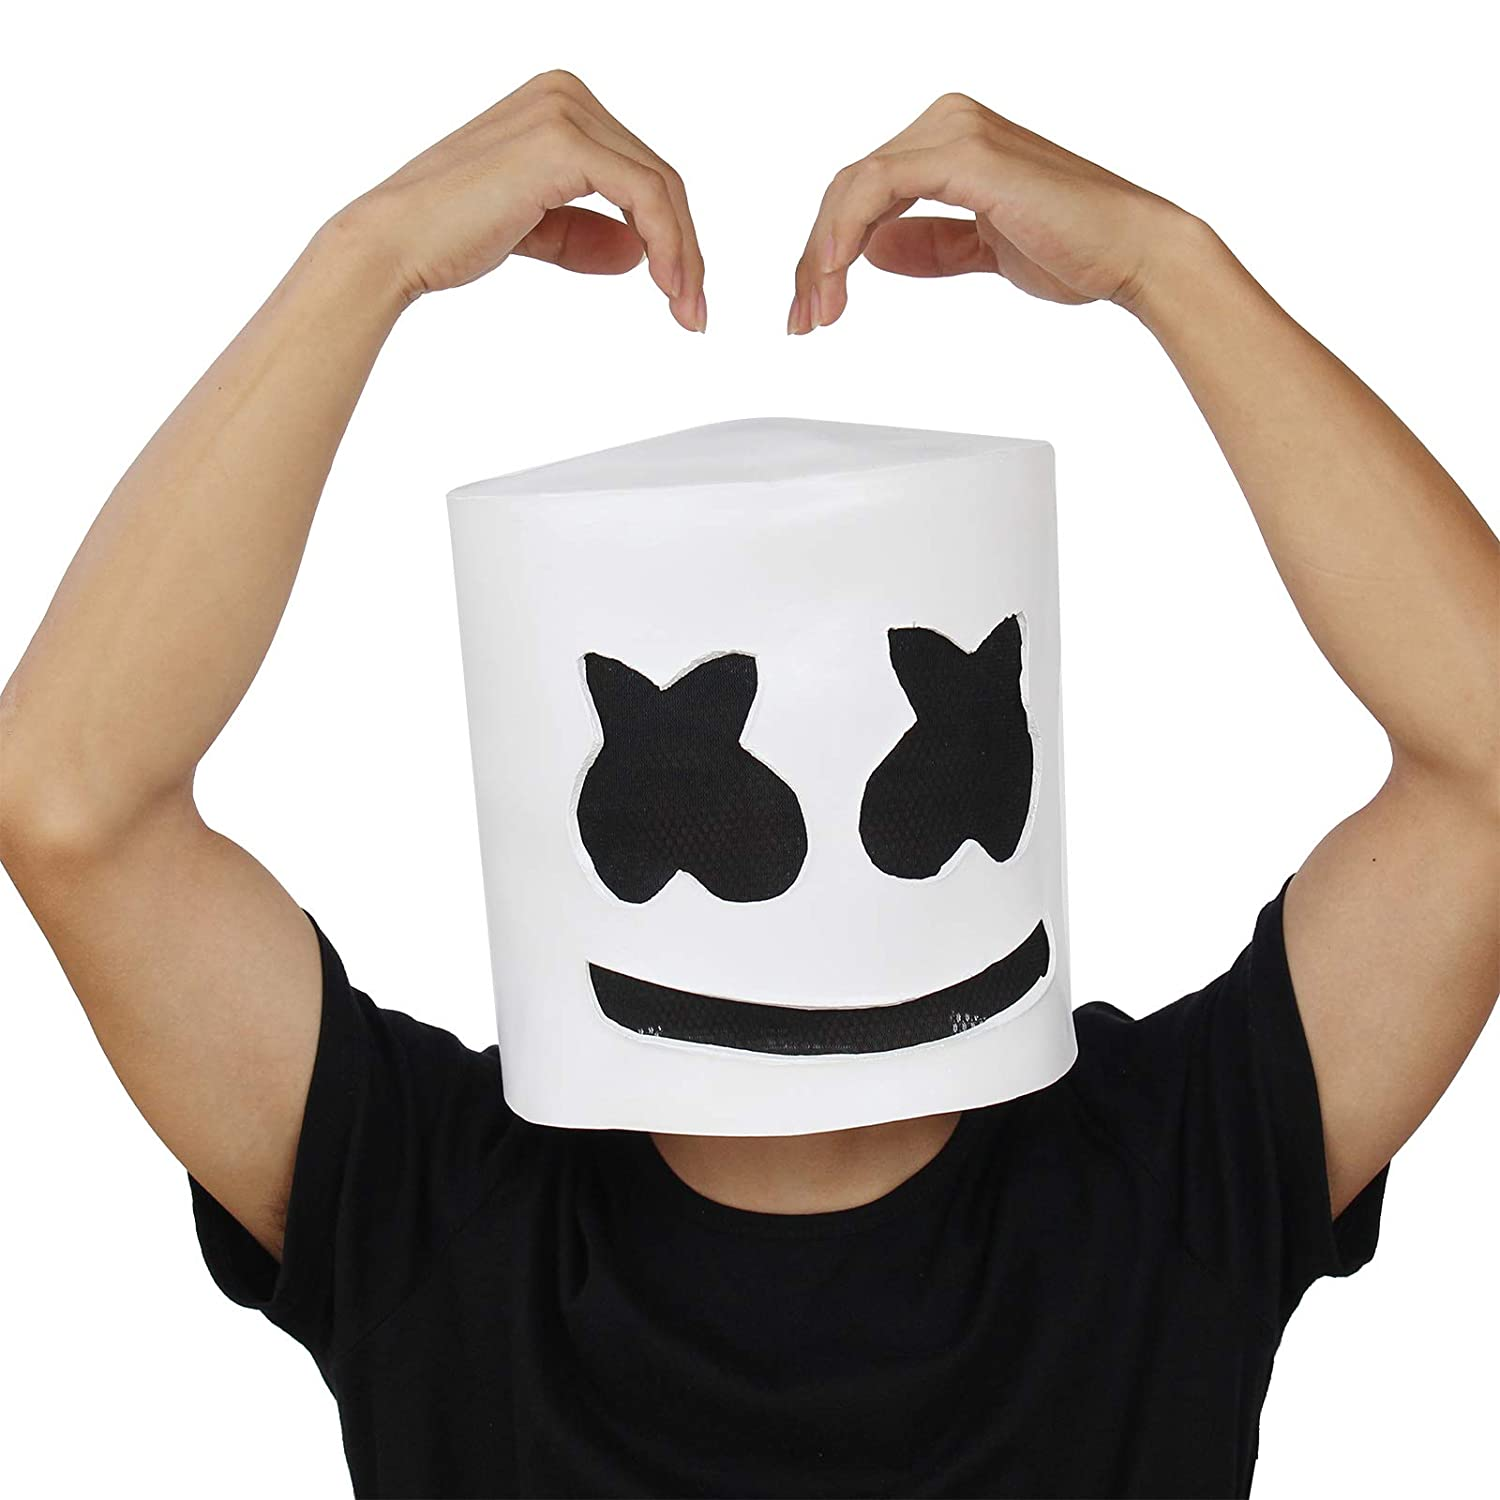 PartyCostume - DJ Marshmello Mask - Halloween Party Cosplay Props Latex Head Mask